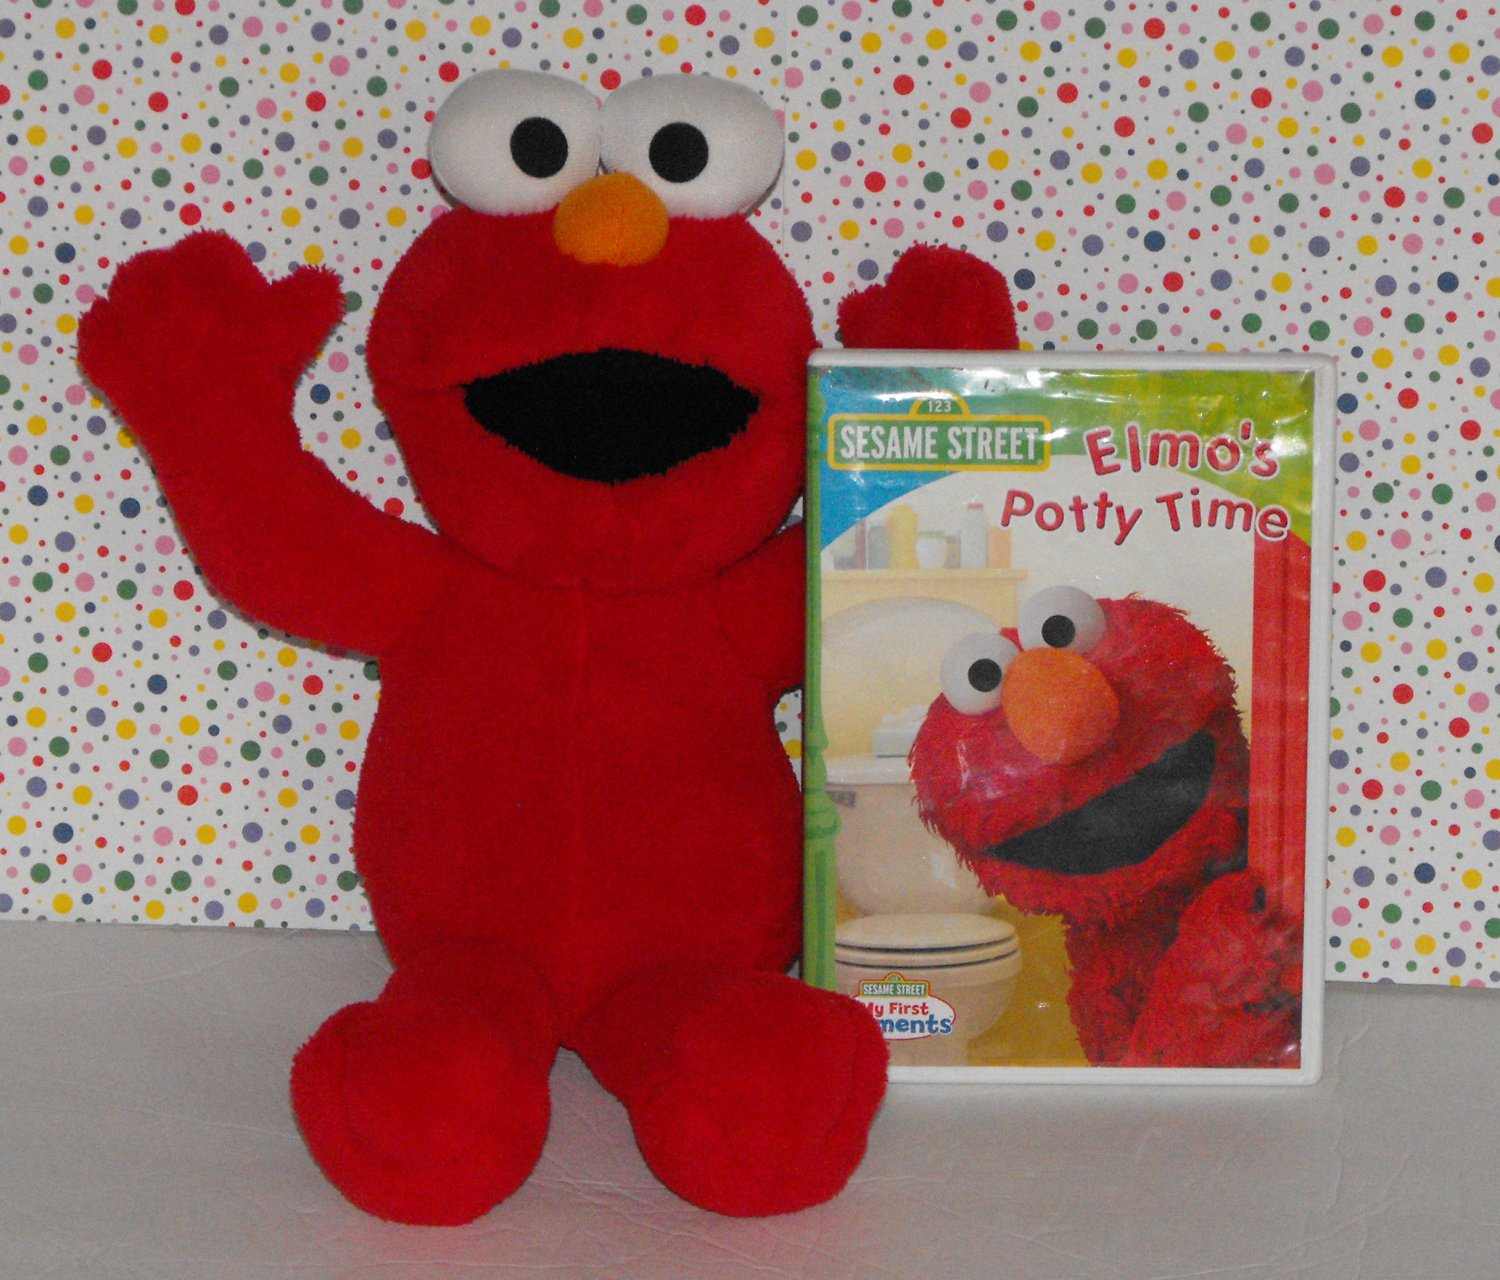 *SOLD*Potty Time Elmo Doll and Potty Time DVD